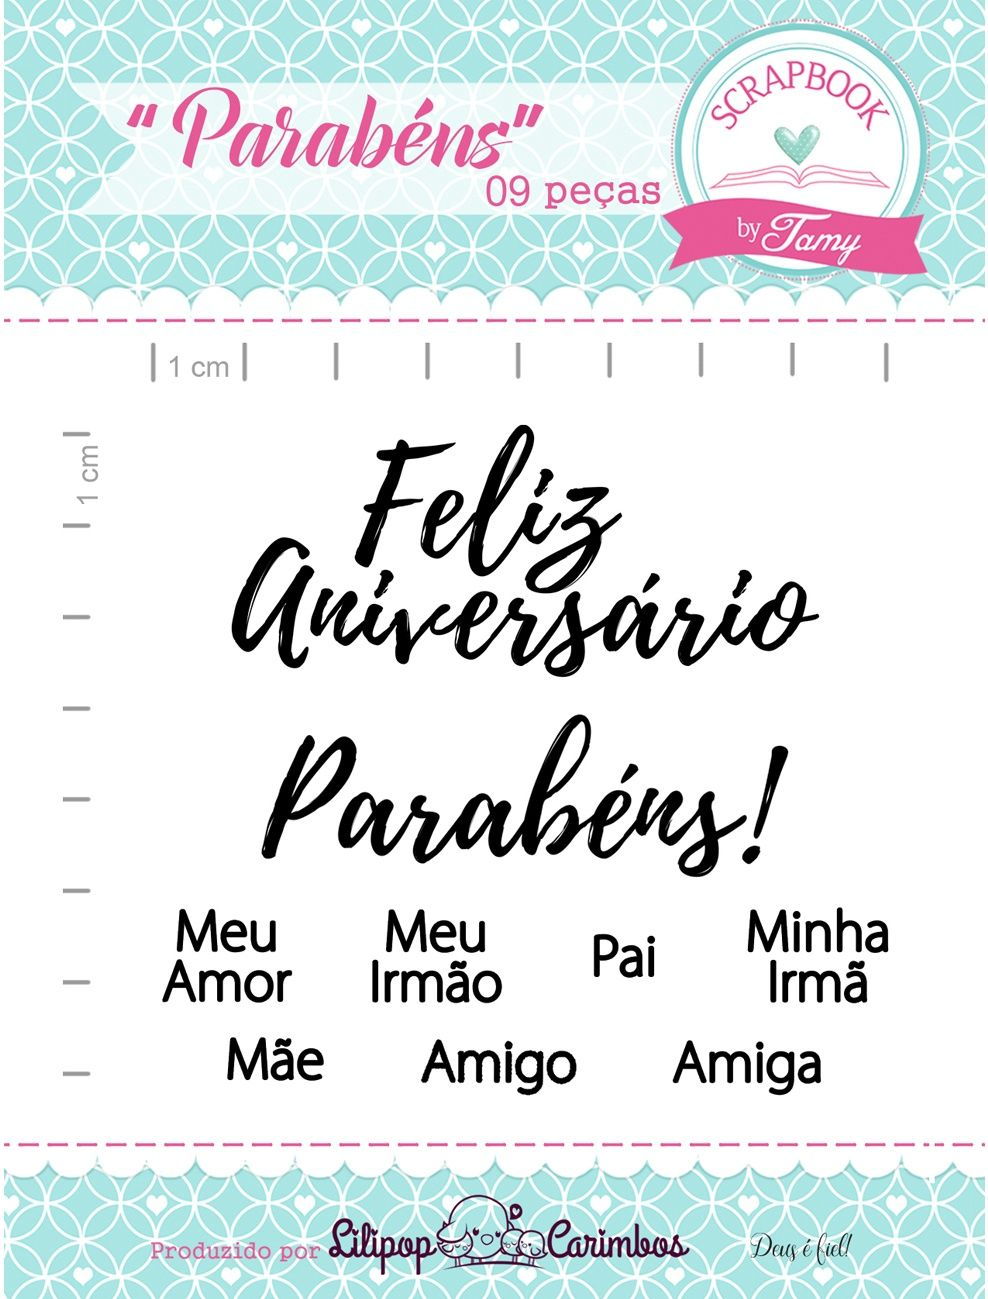 Kit de Carimbos - Parabéns - Scrapbook by Tamy (OUTLET)